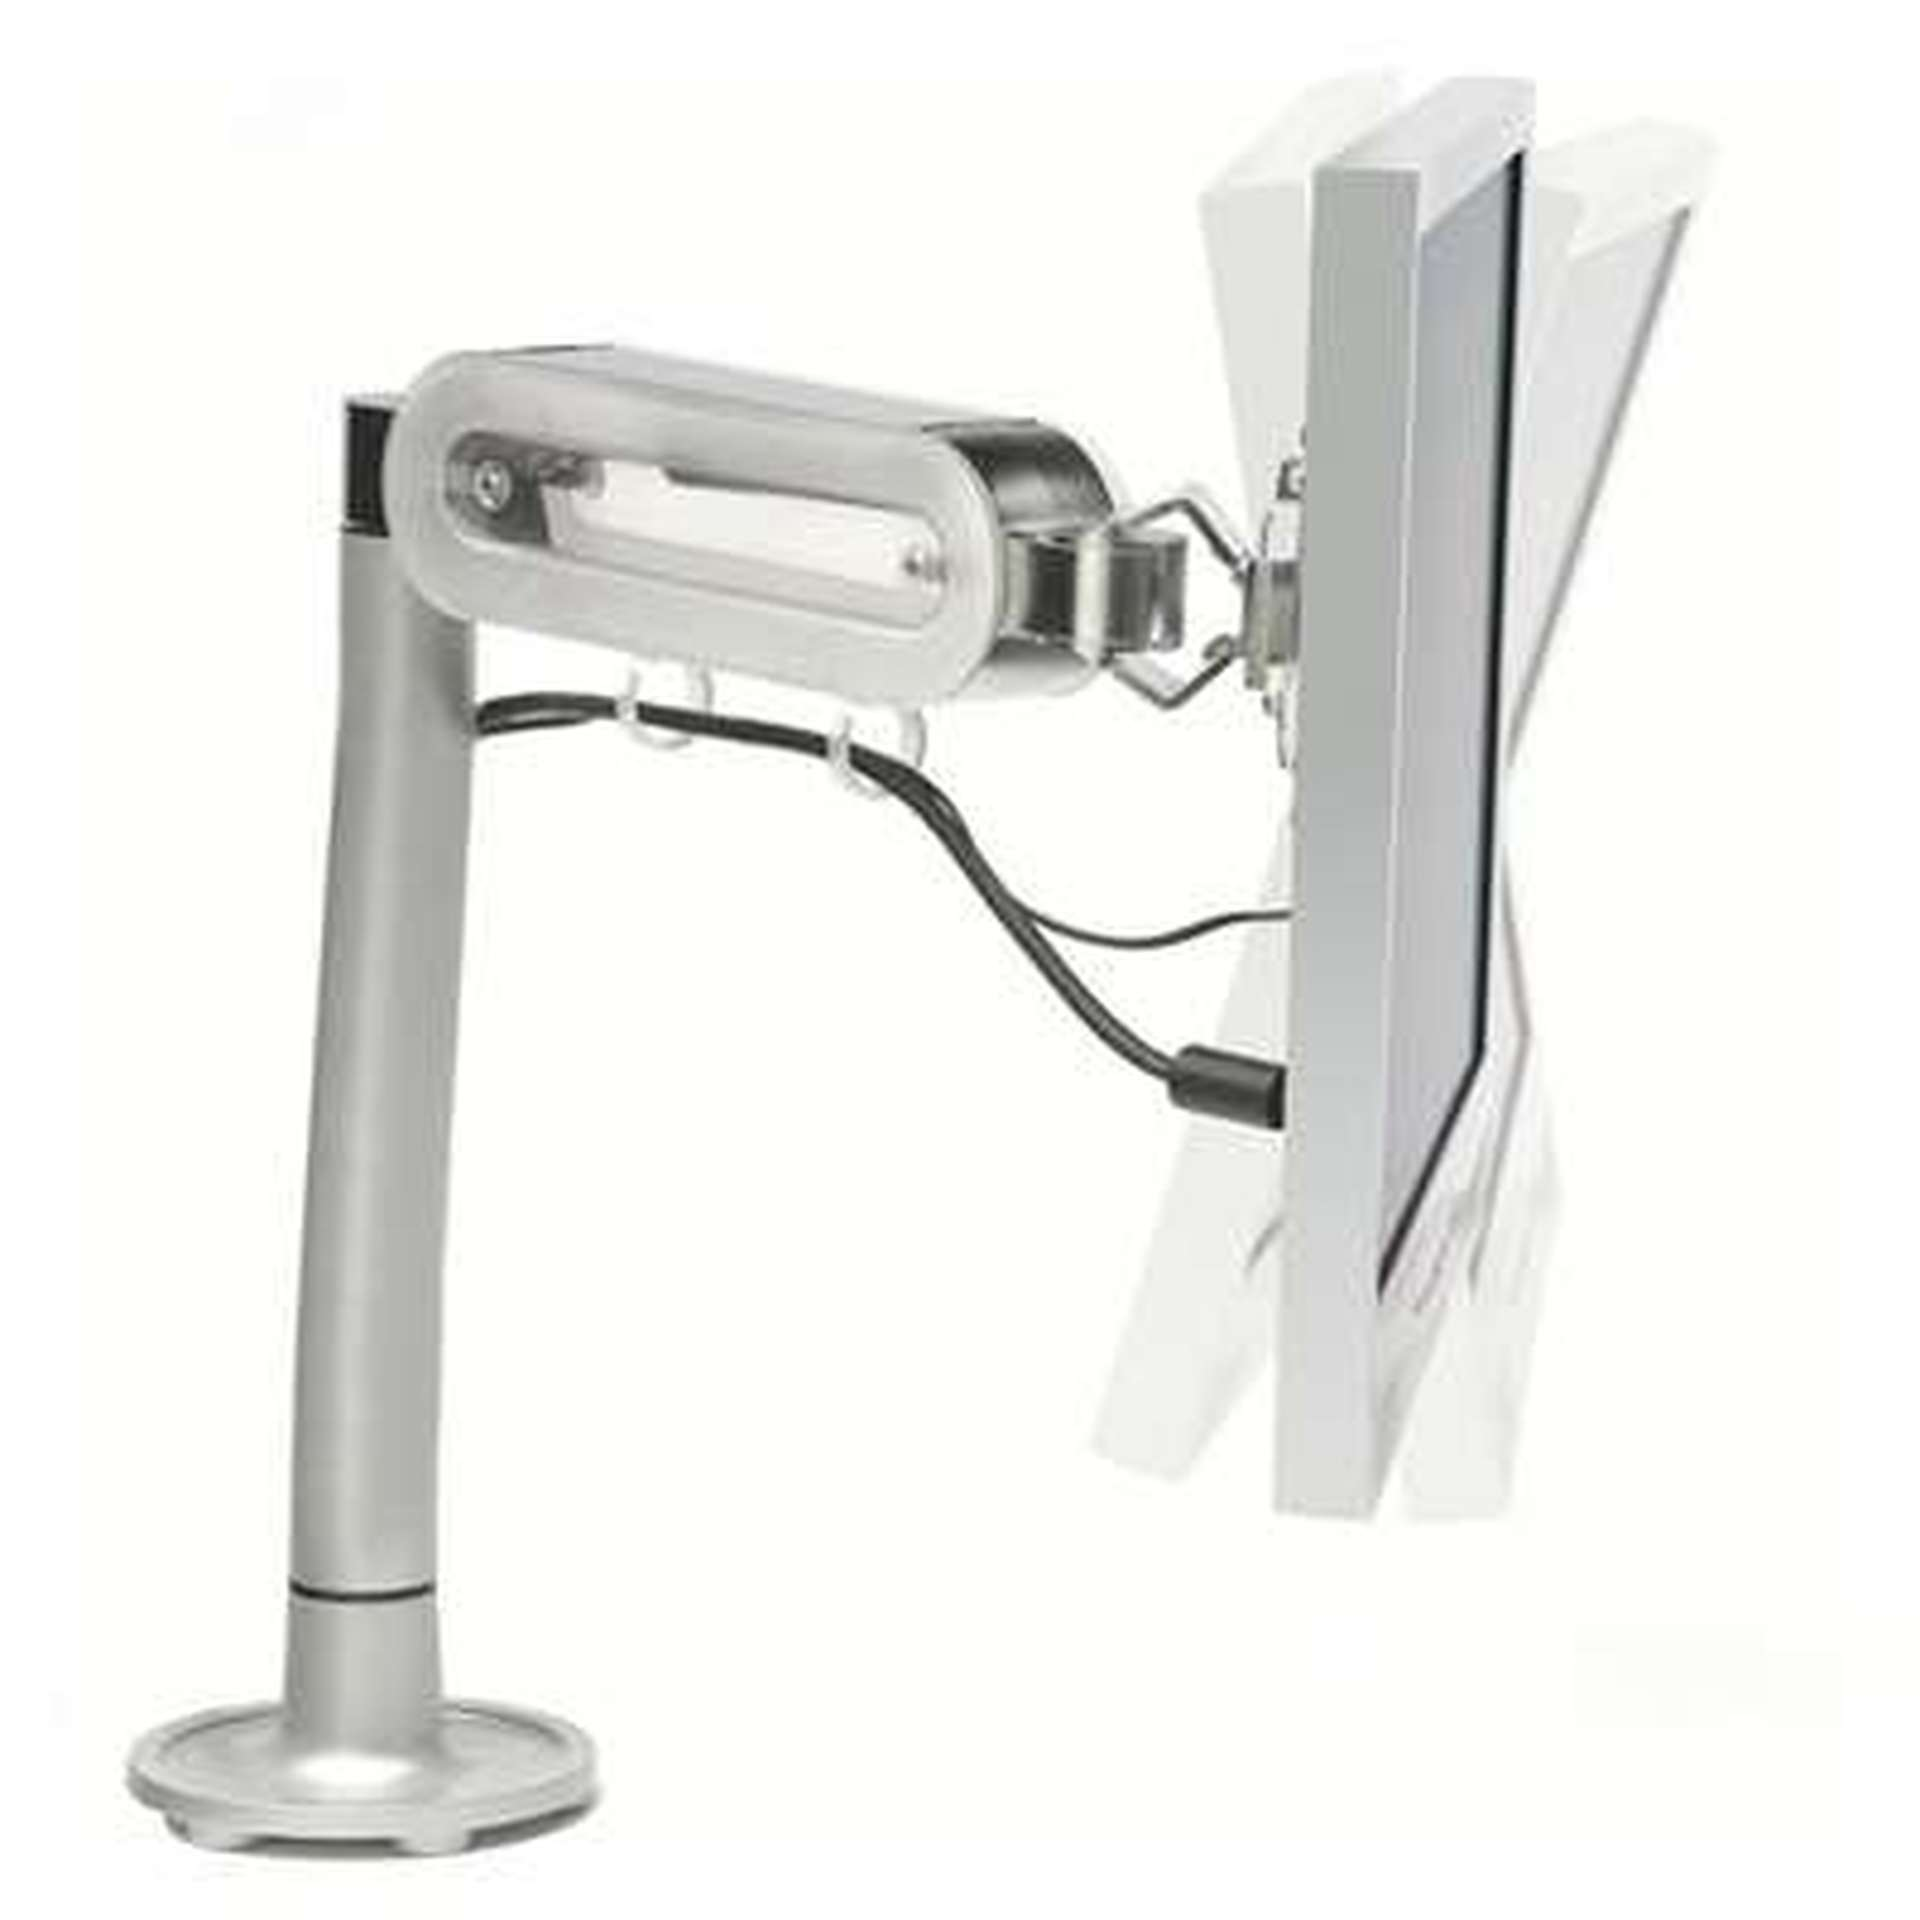 FYI Clamp Monitor Arm in Arctic White by Steelcase